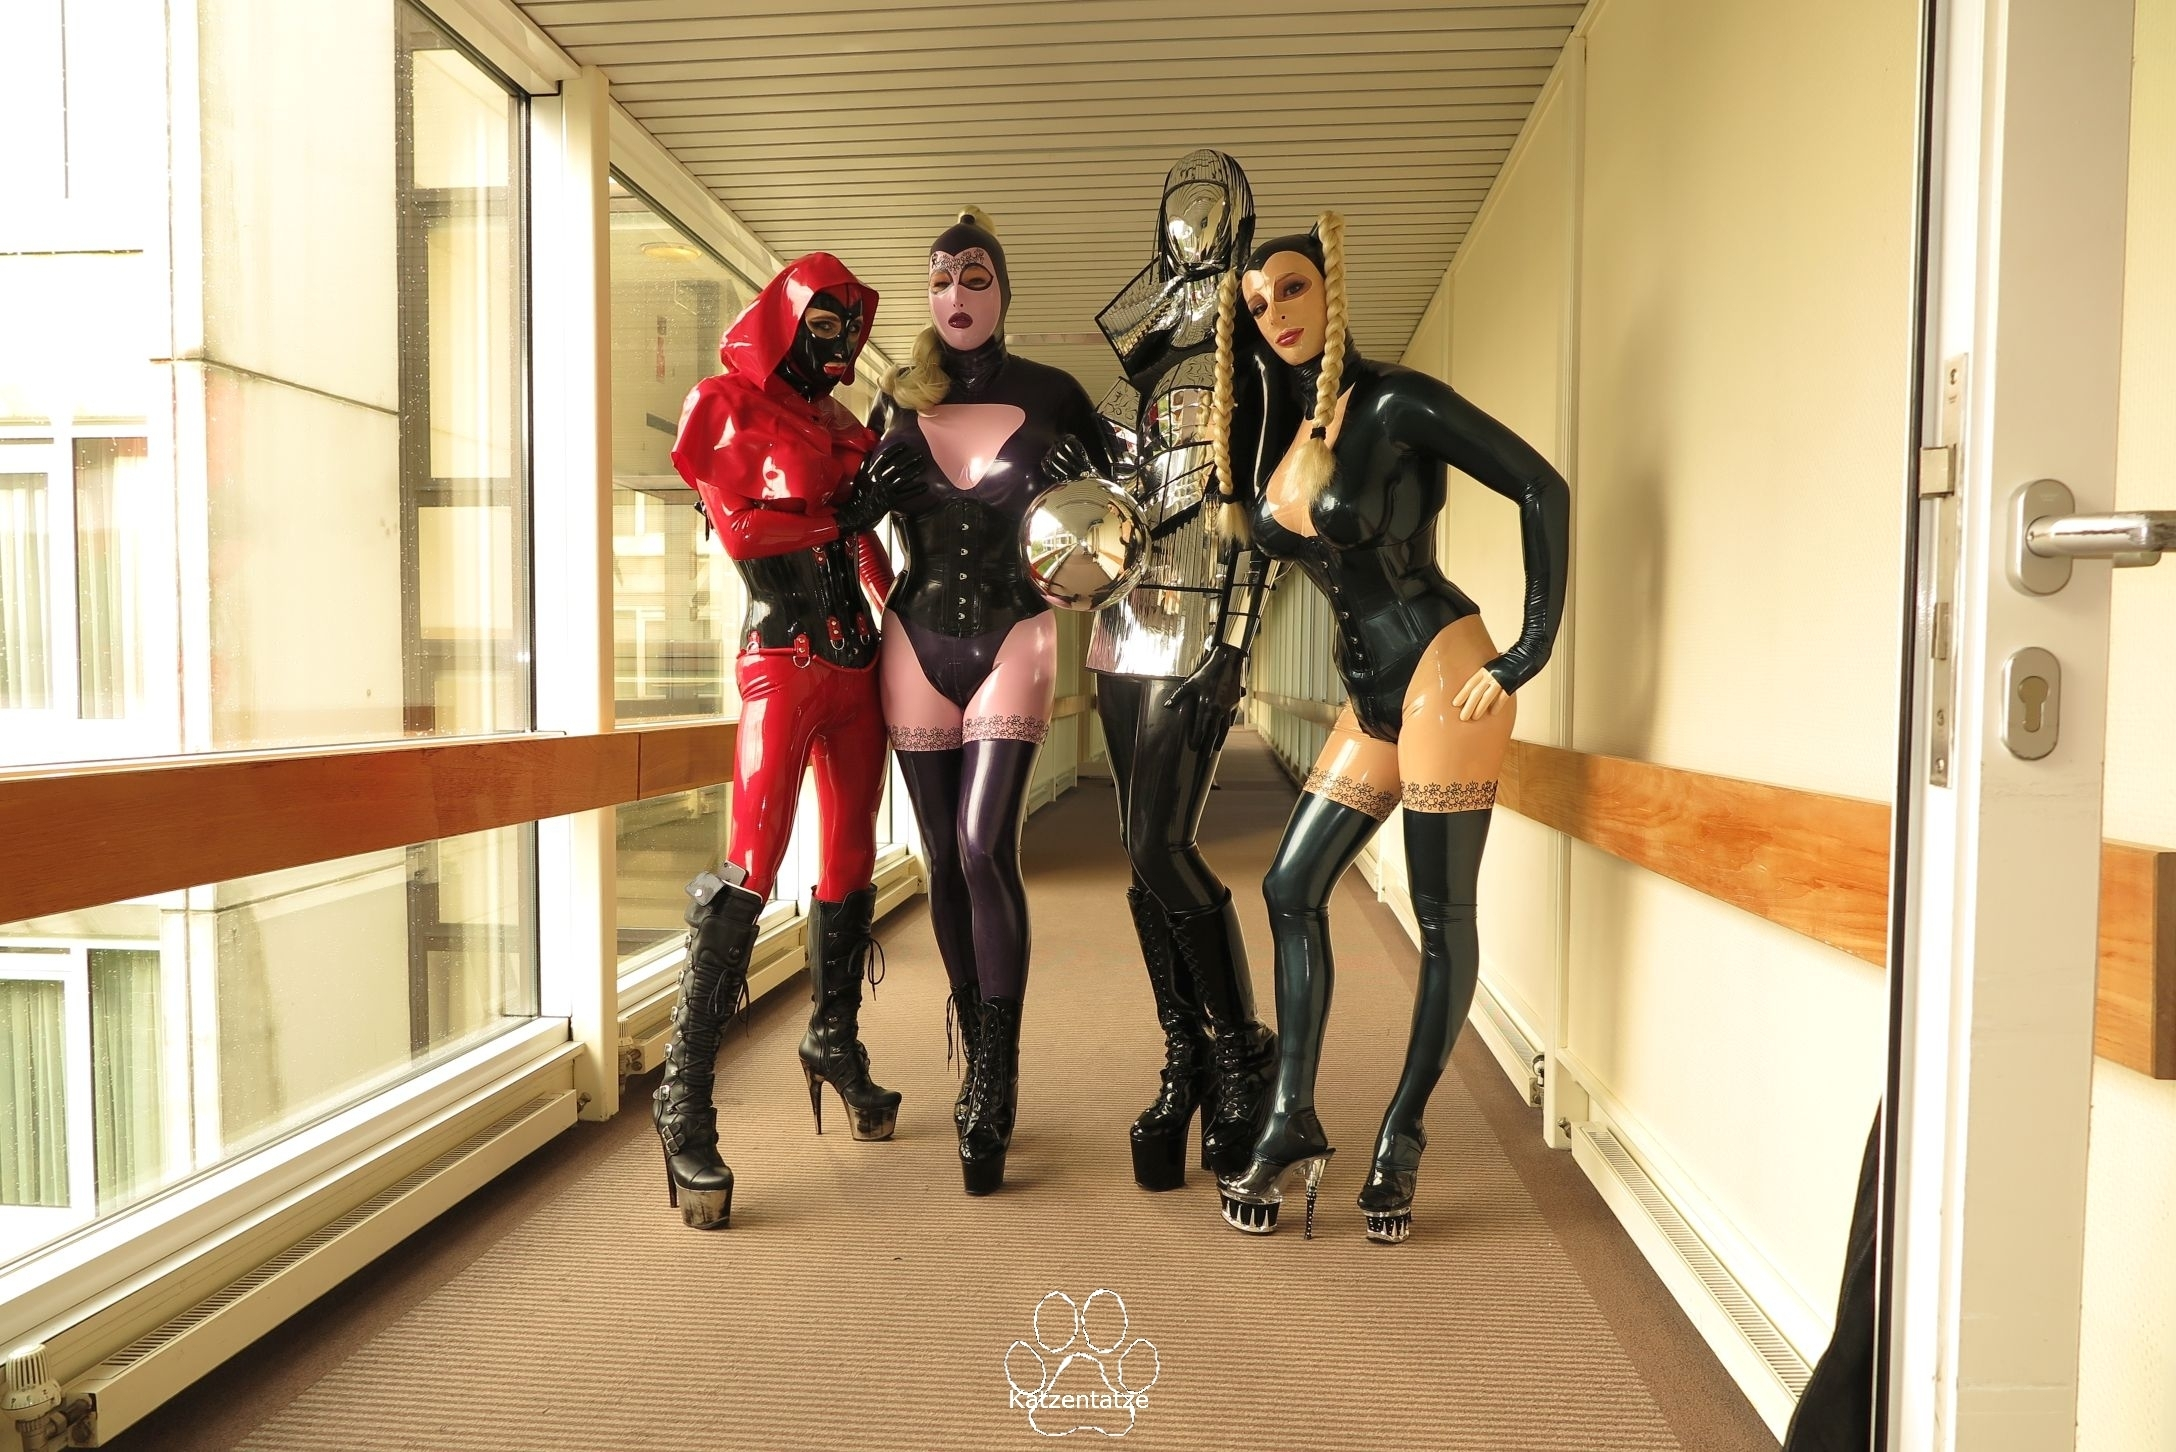 Latex Lea, die Gummipuppe, Yumi und Chrissie Seams